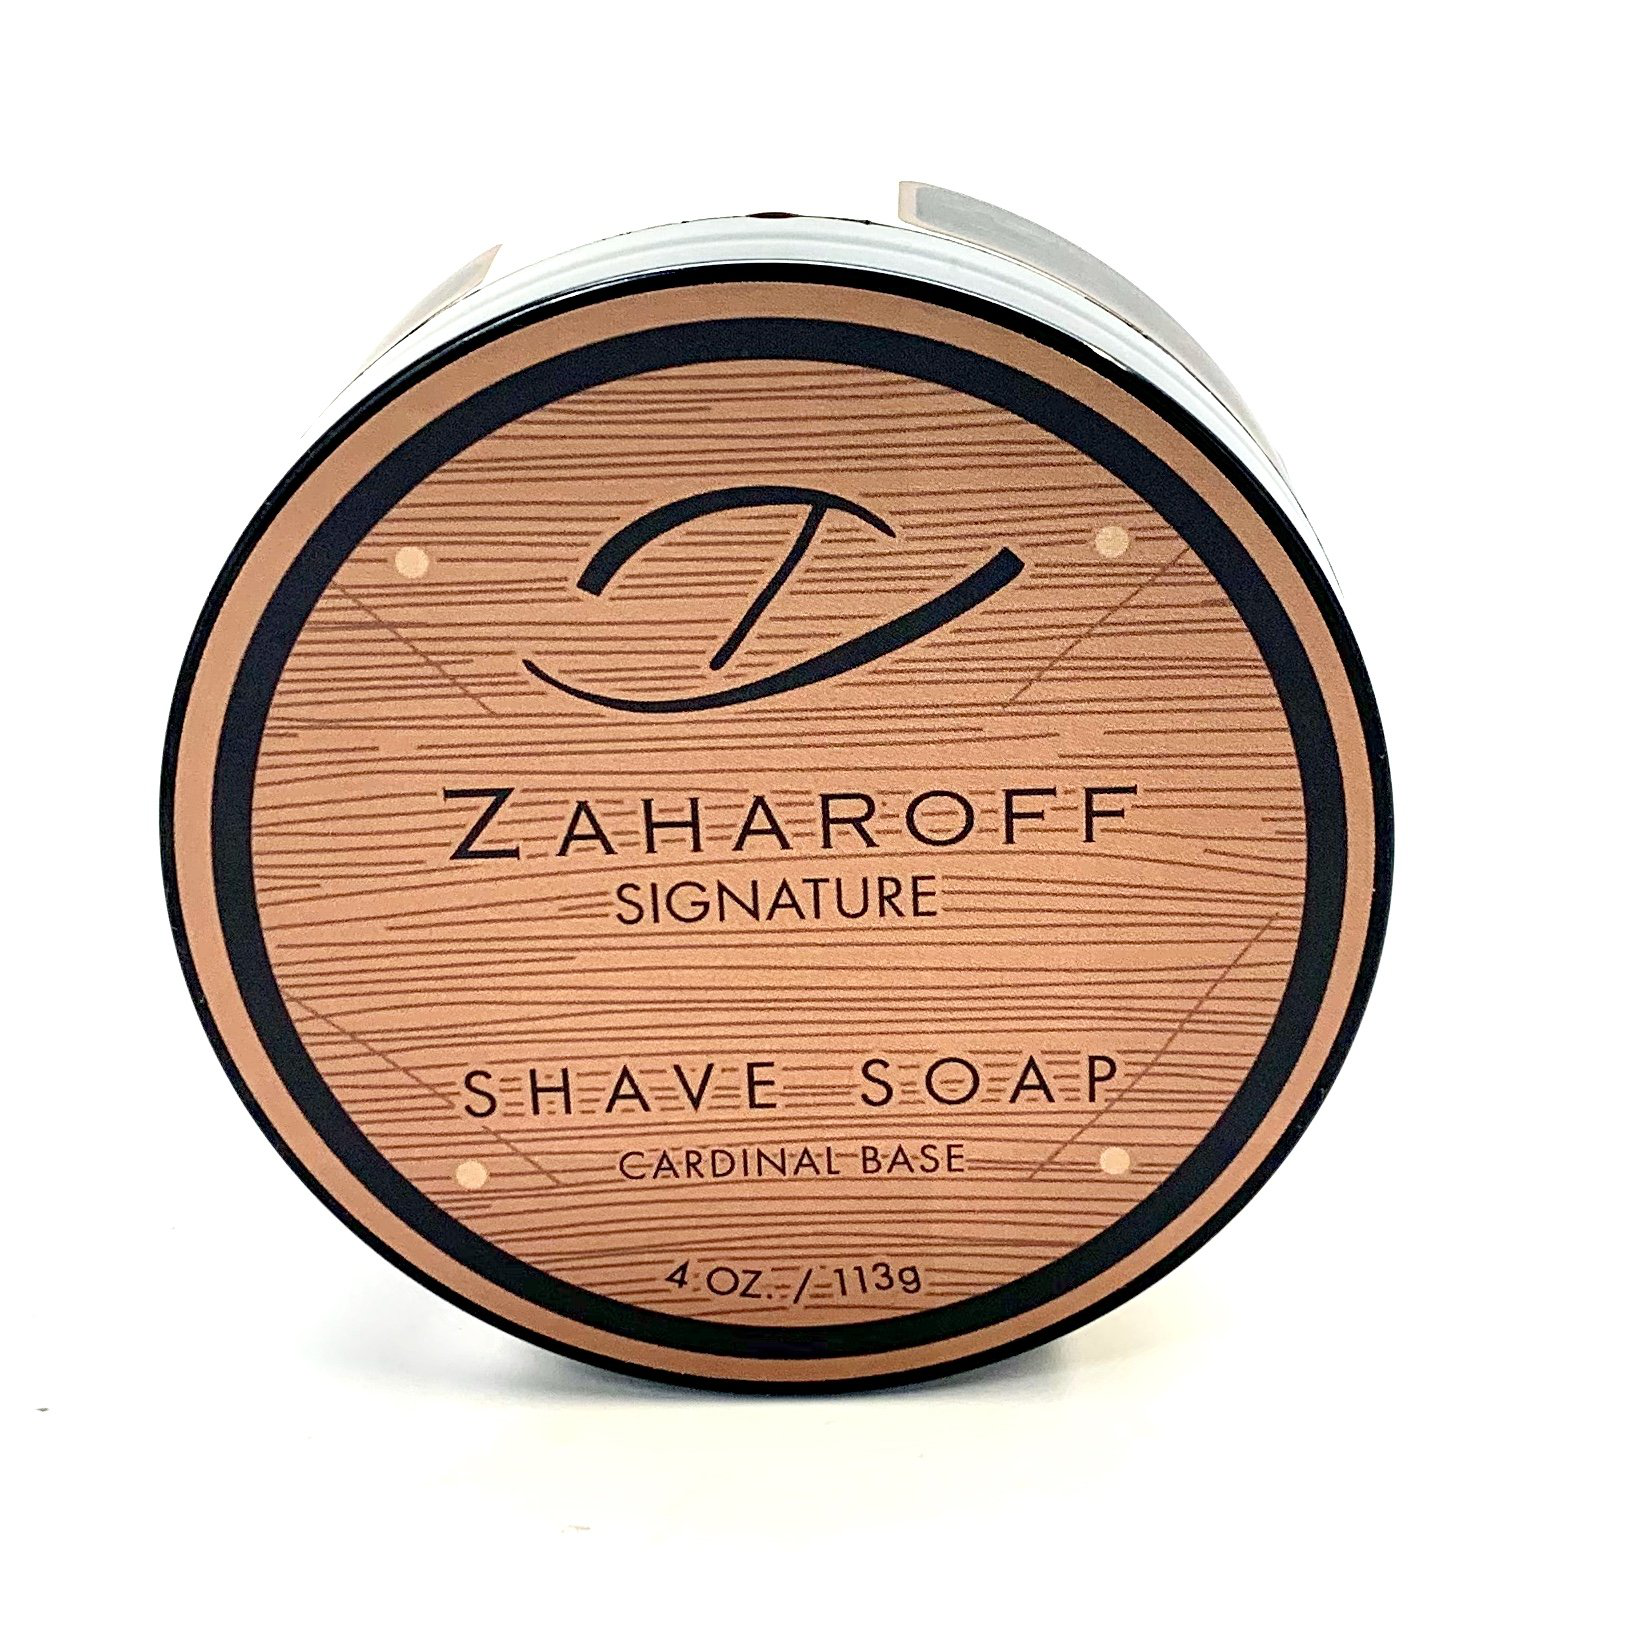 Gentleman's Nod - Zaharoff Signature Collection - Soap image